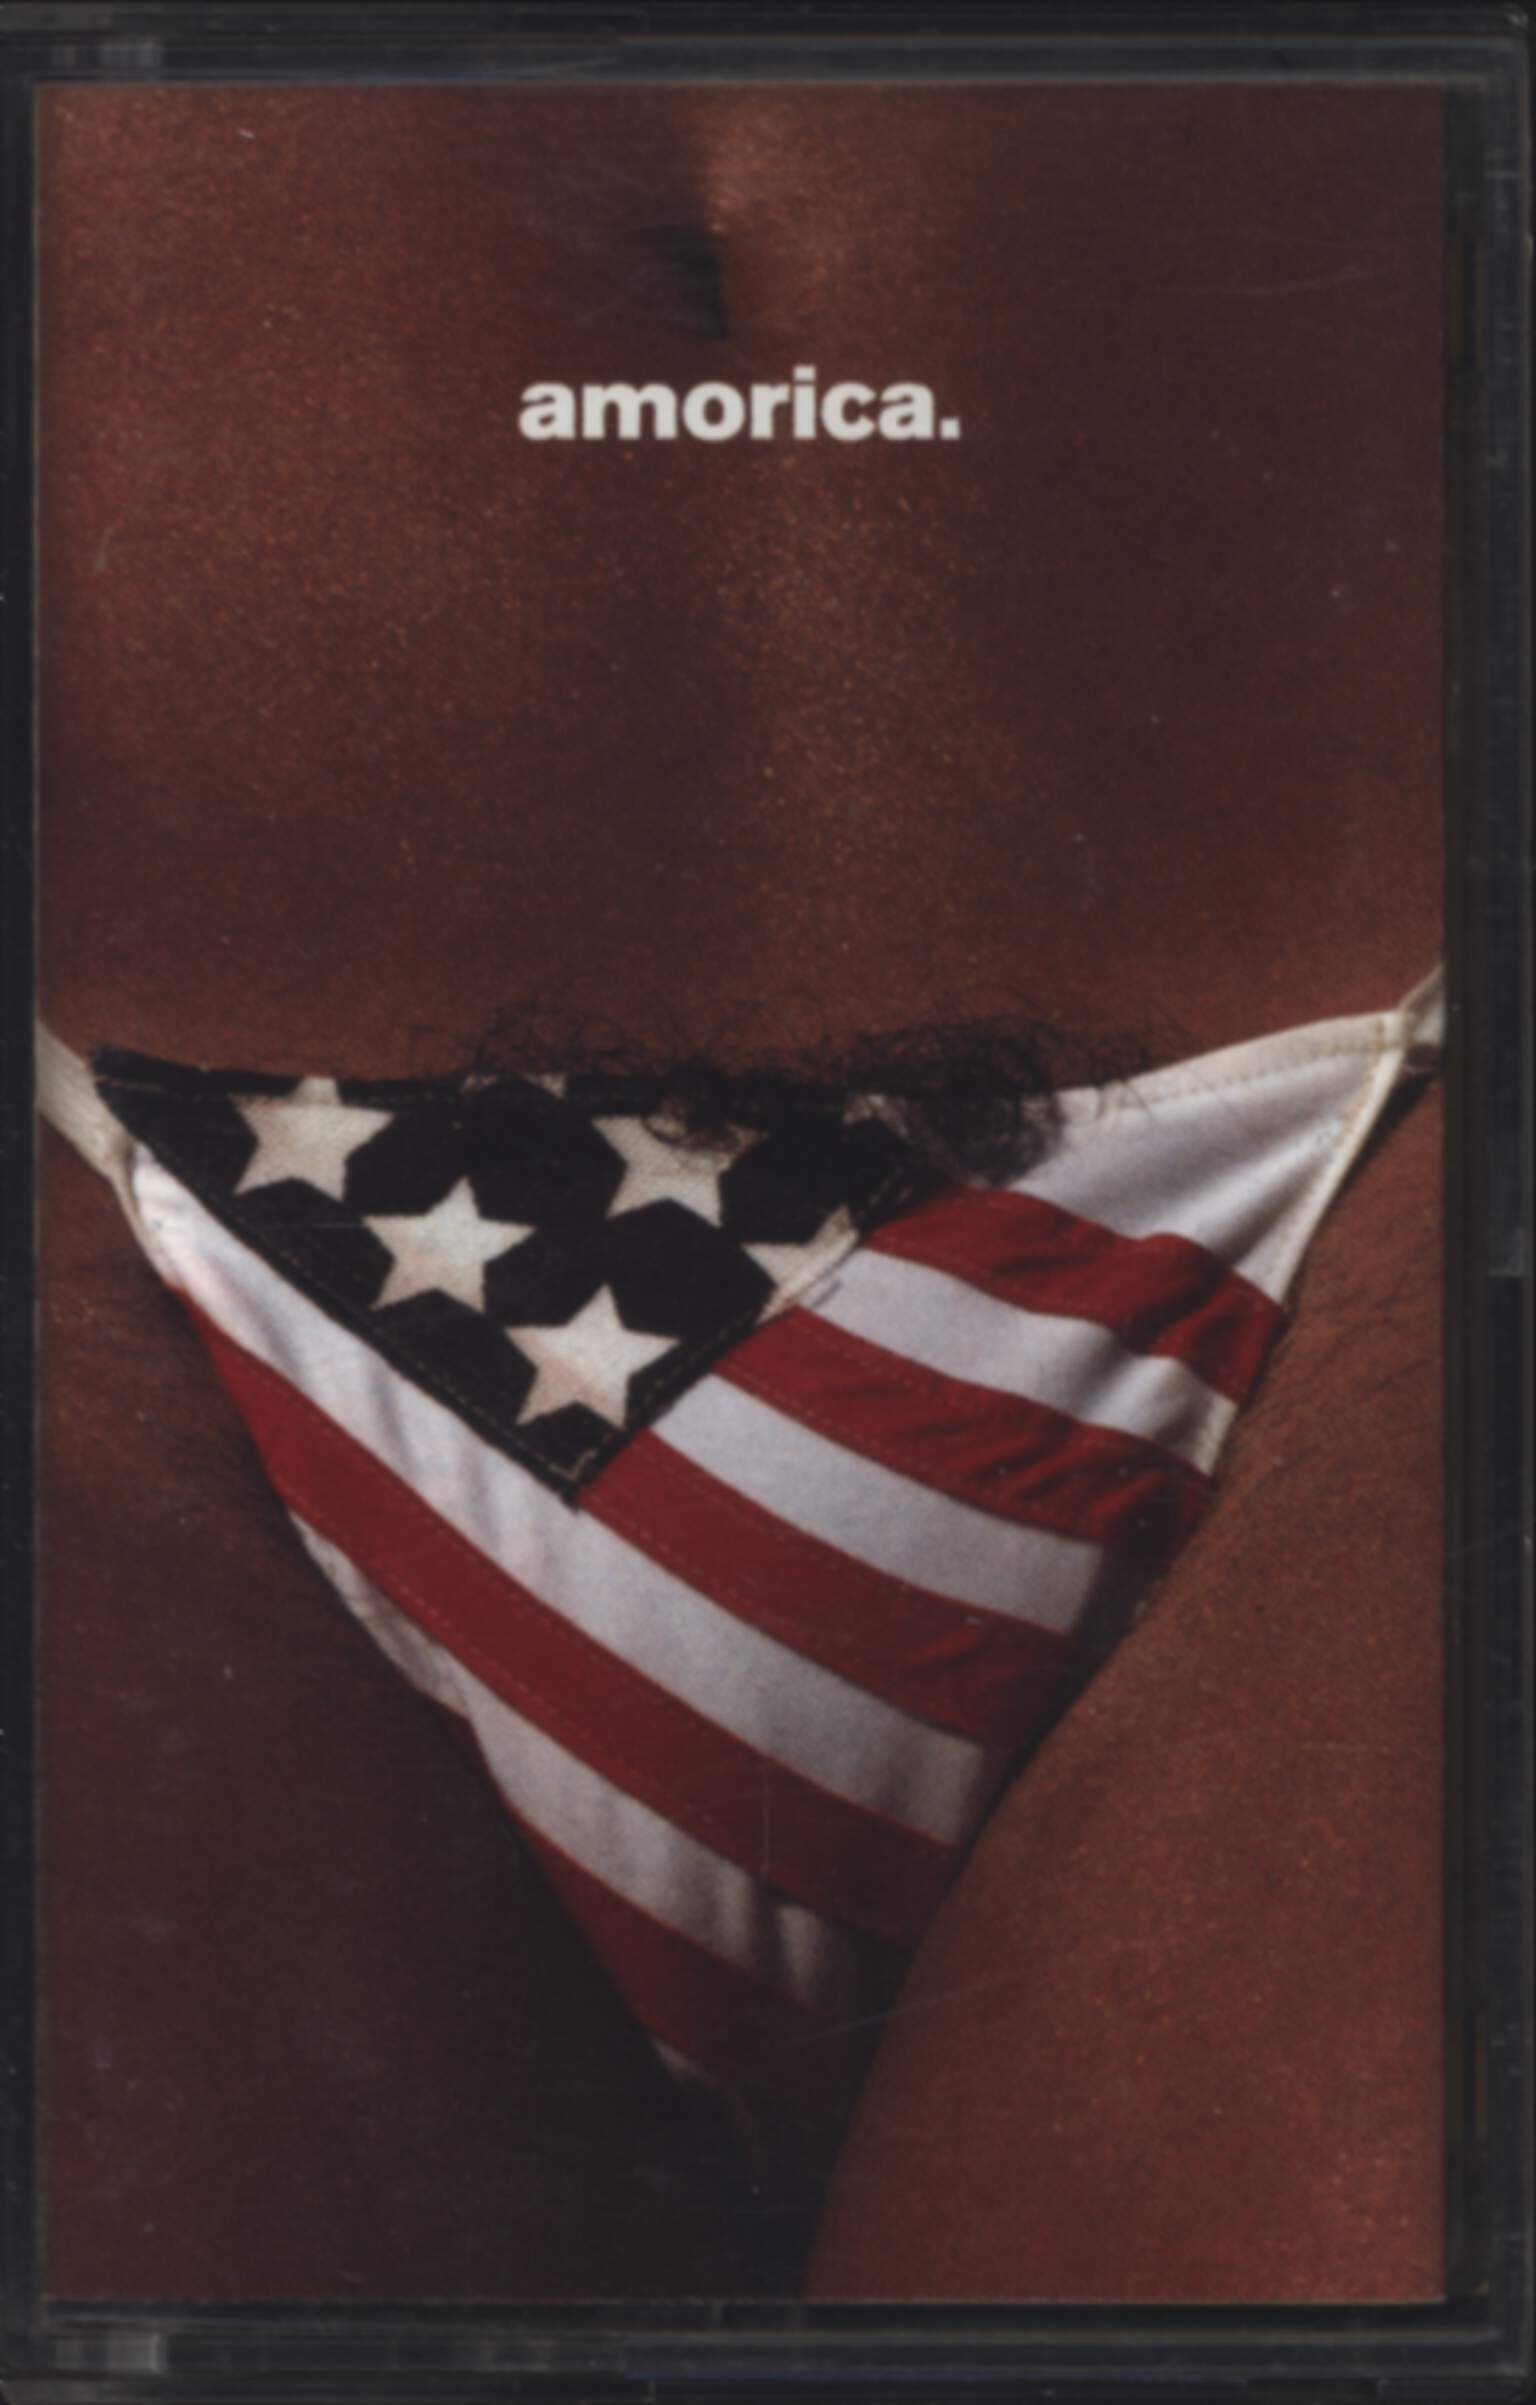 The Black Crowes: Amorica, Compact Cassette